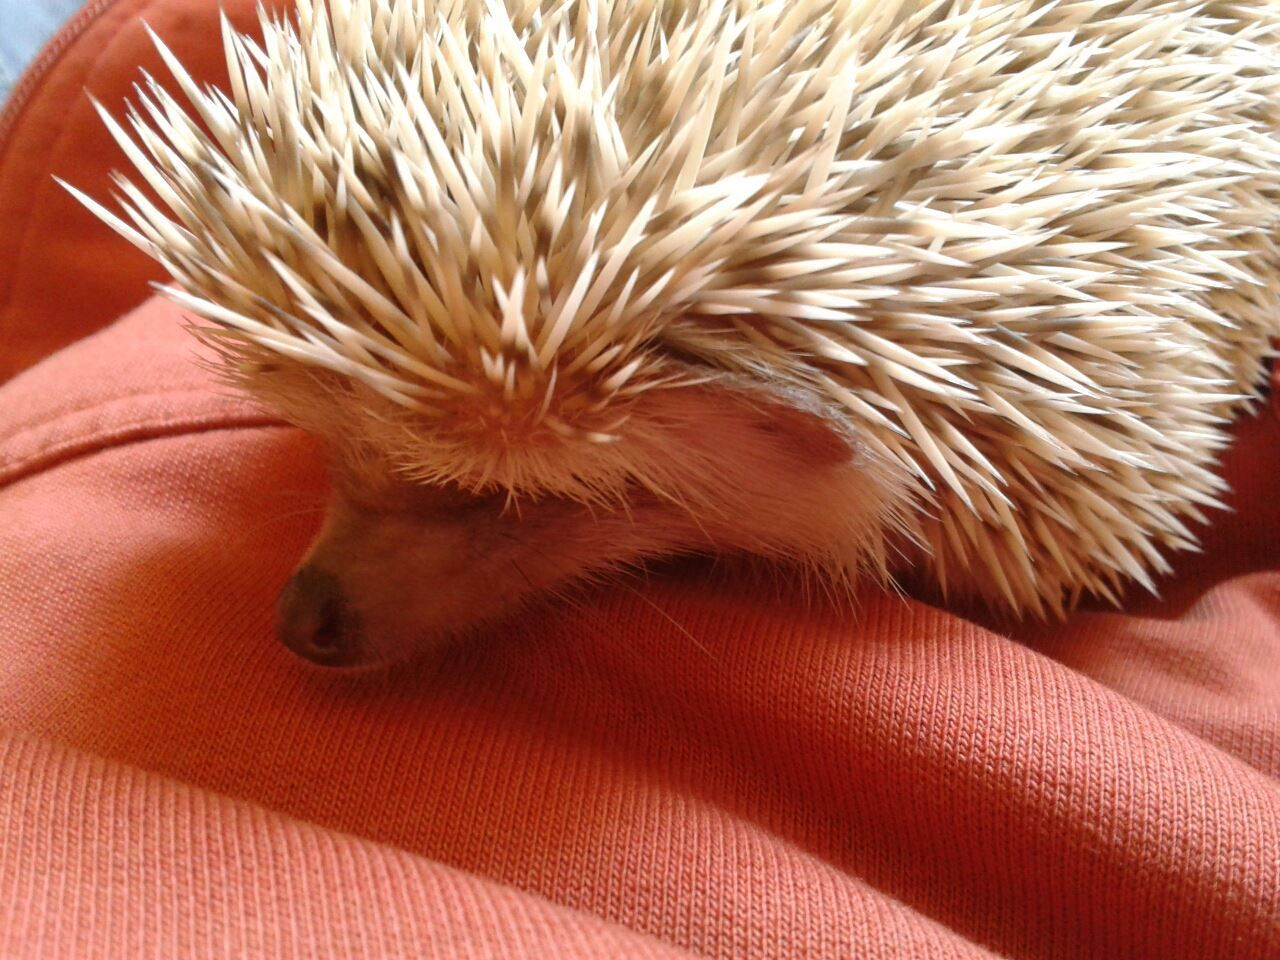 From Francisco In Mexico That S My Little Hedgehog His Name Is Otto And We Live In Mexico Herisson